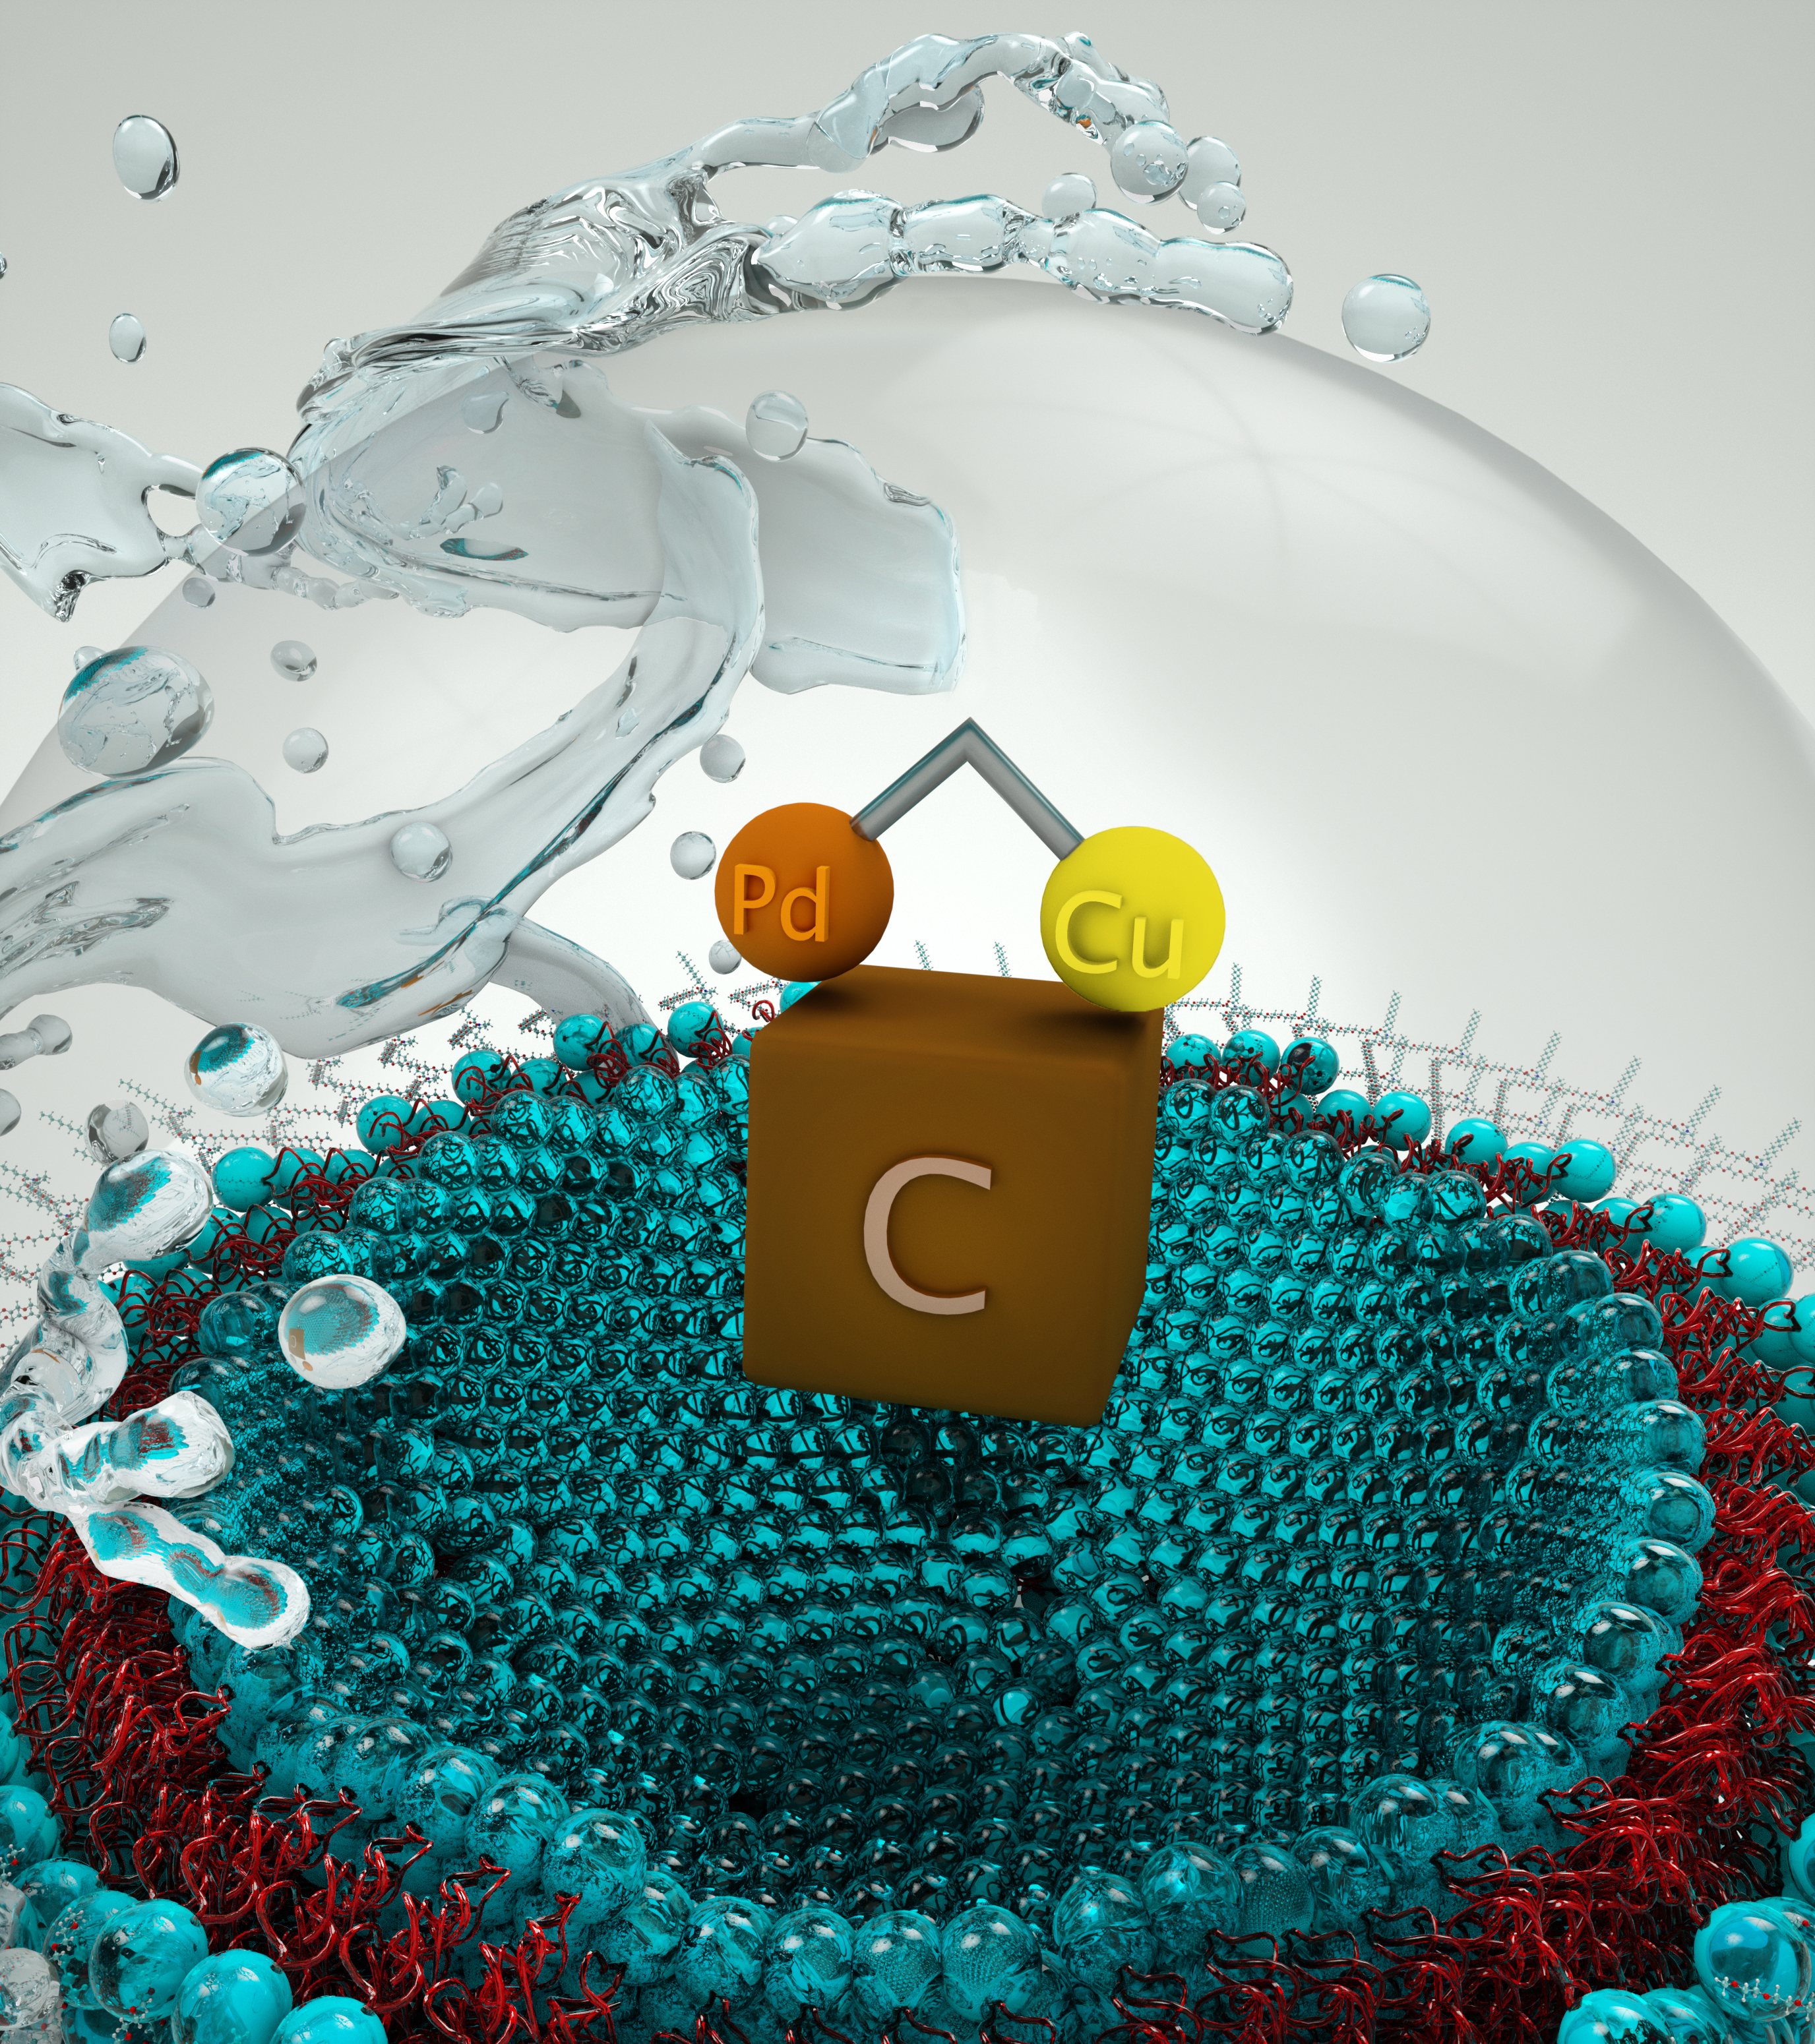 ACS_Catalysis_Cover_Draft6